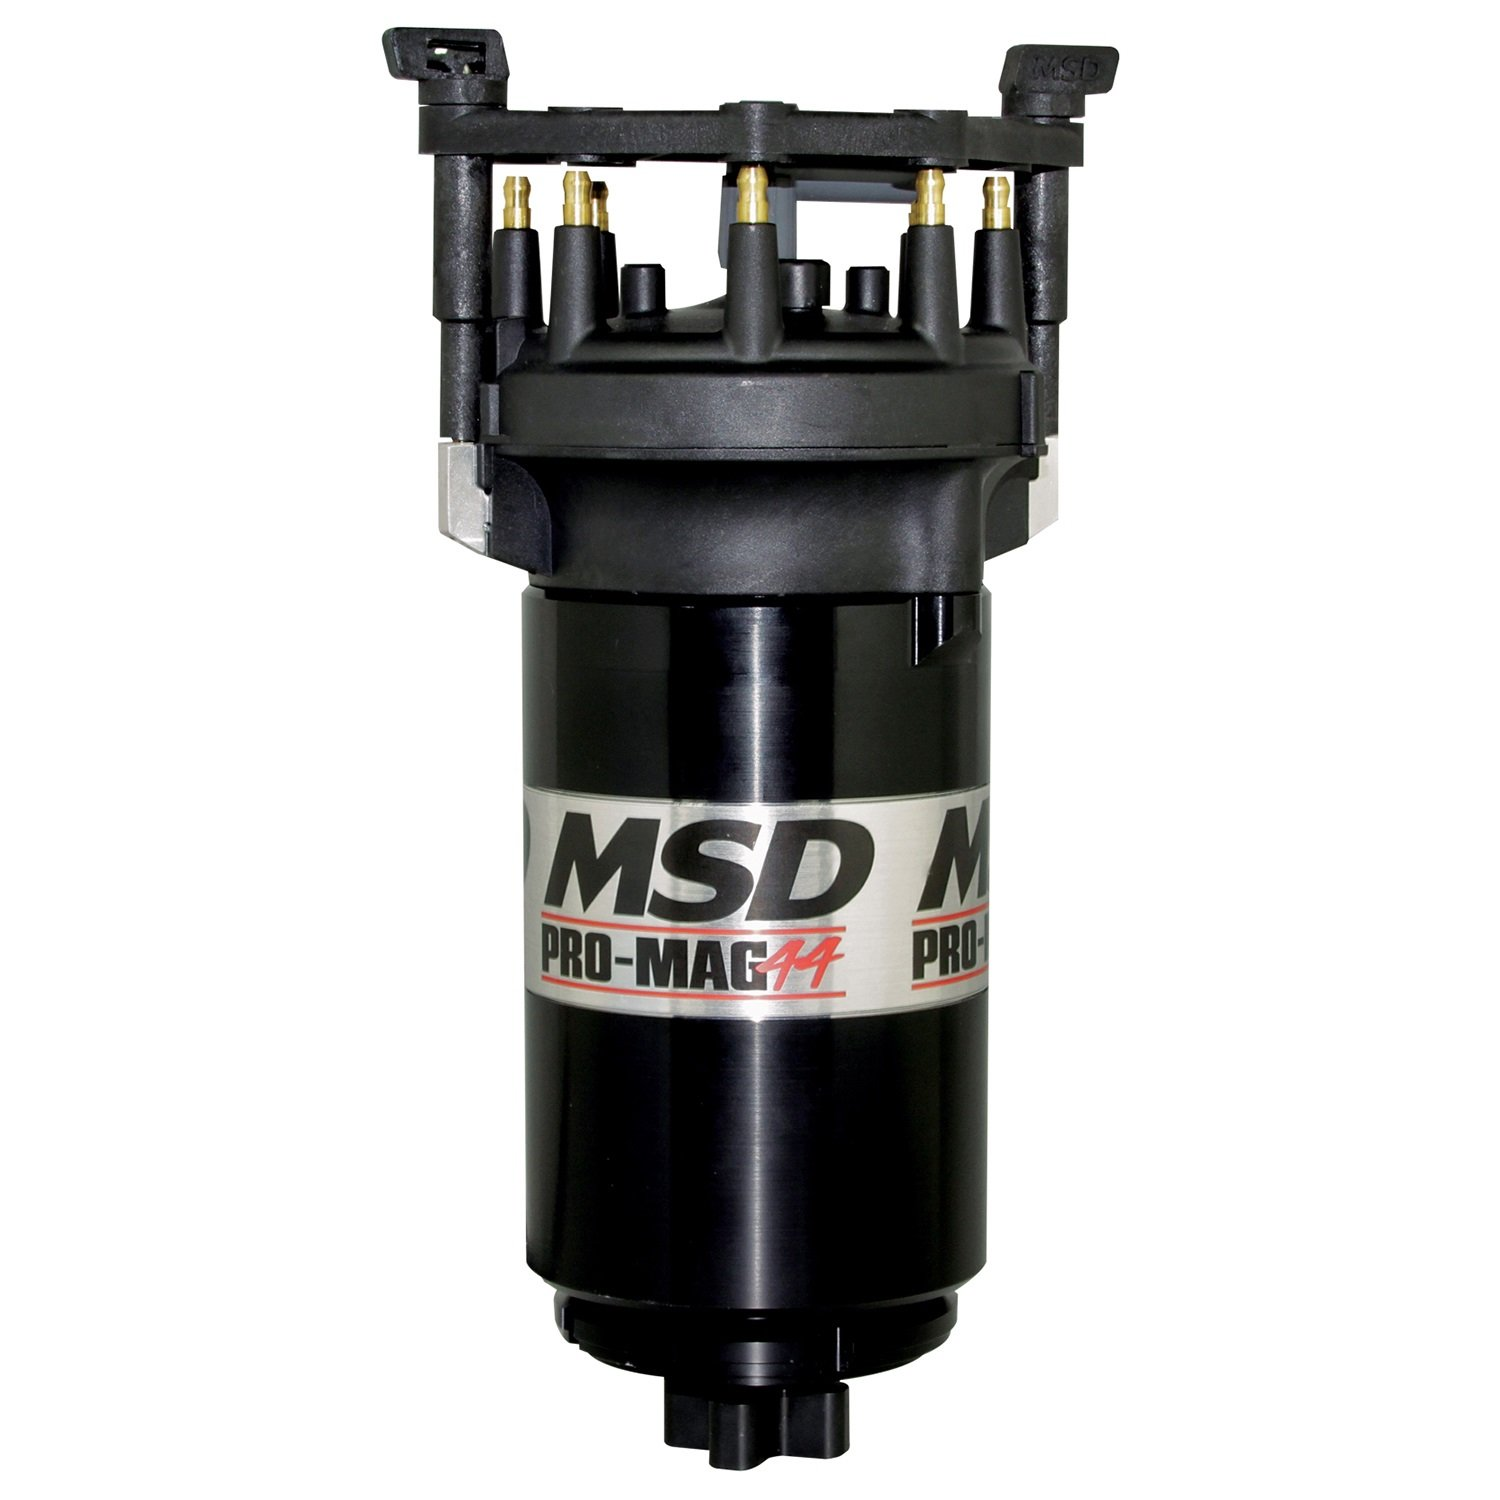 MSD IGNITION 81407 Black Pro Mag Counter Clockwise (w/Big Cap) by MSD Ignition